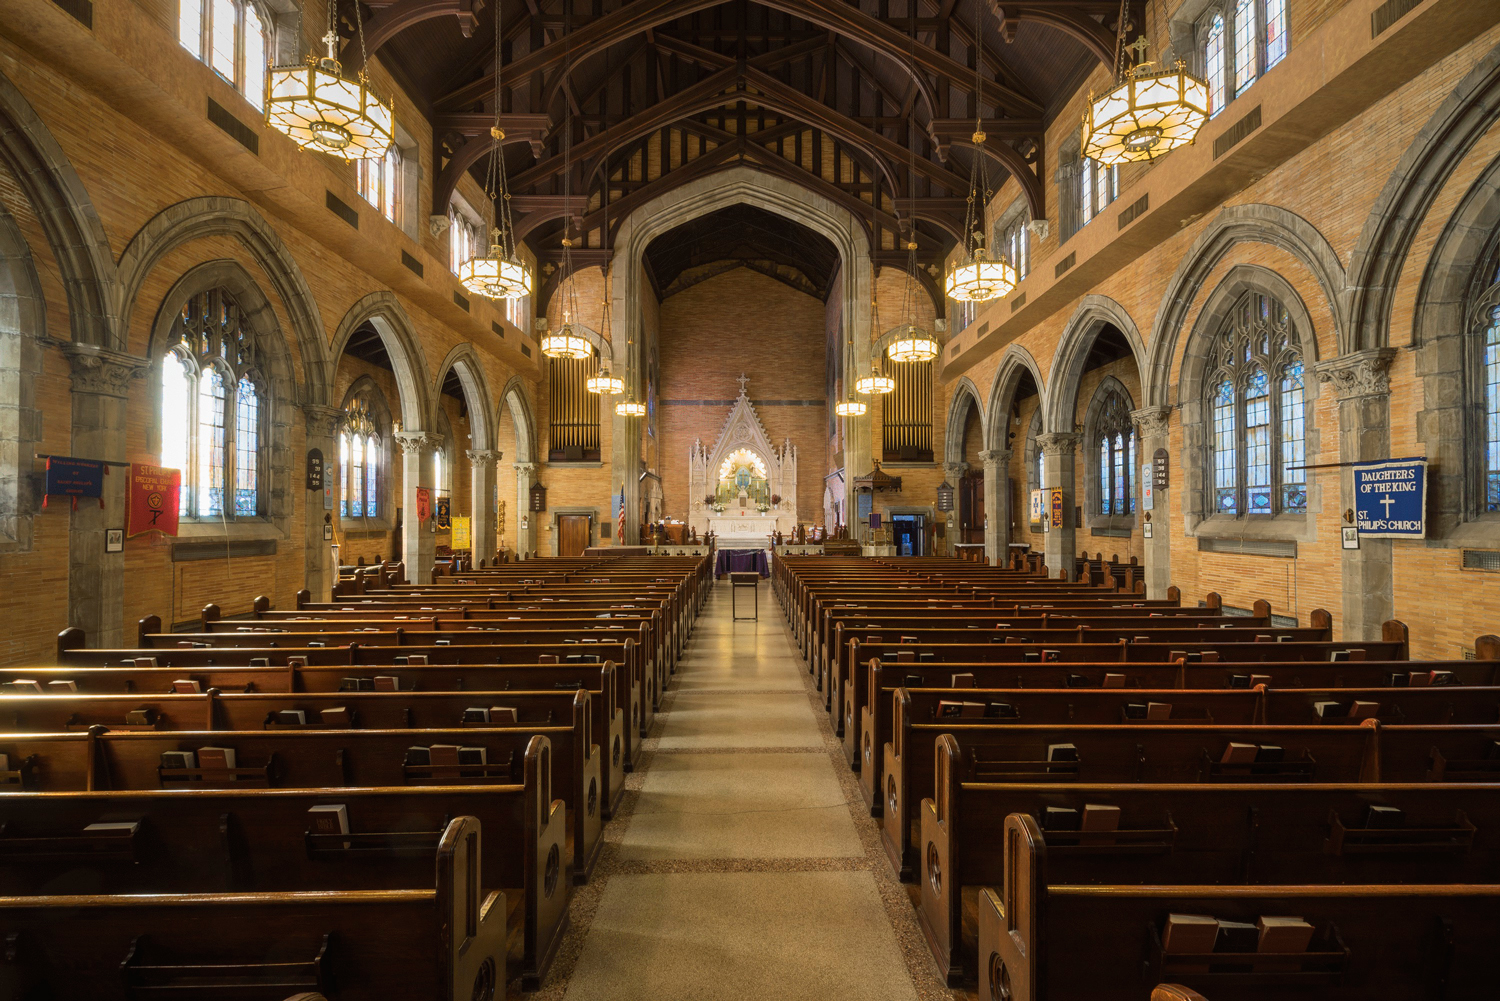 Interior of St. Philips Church, Harlem